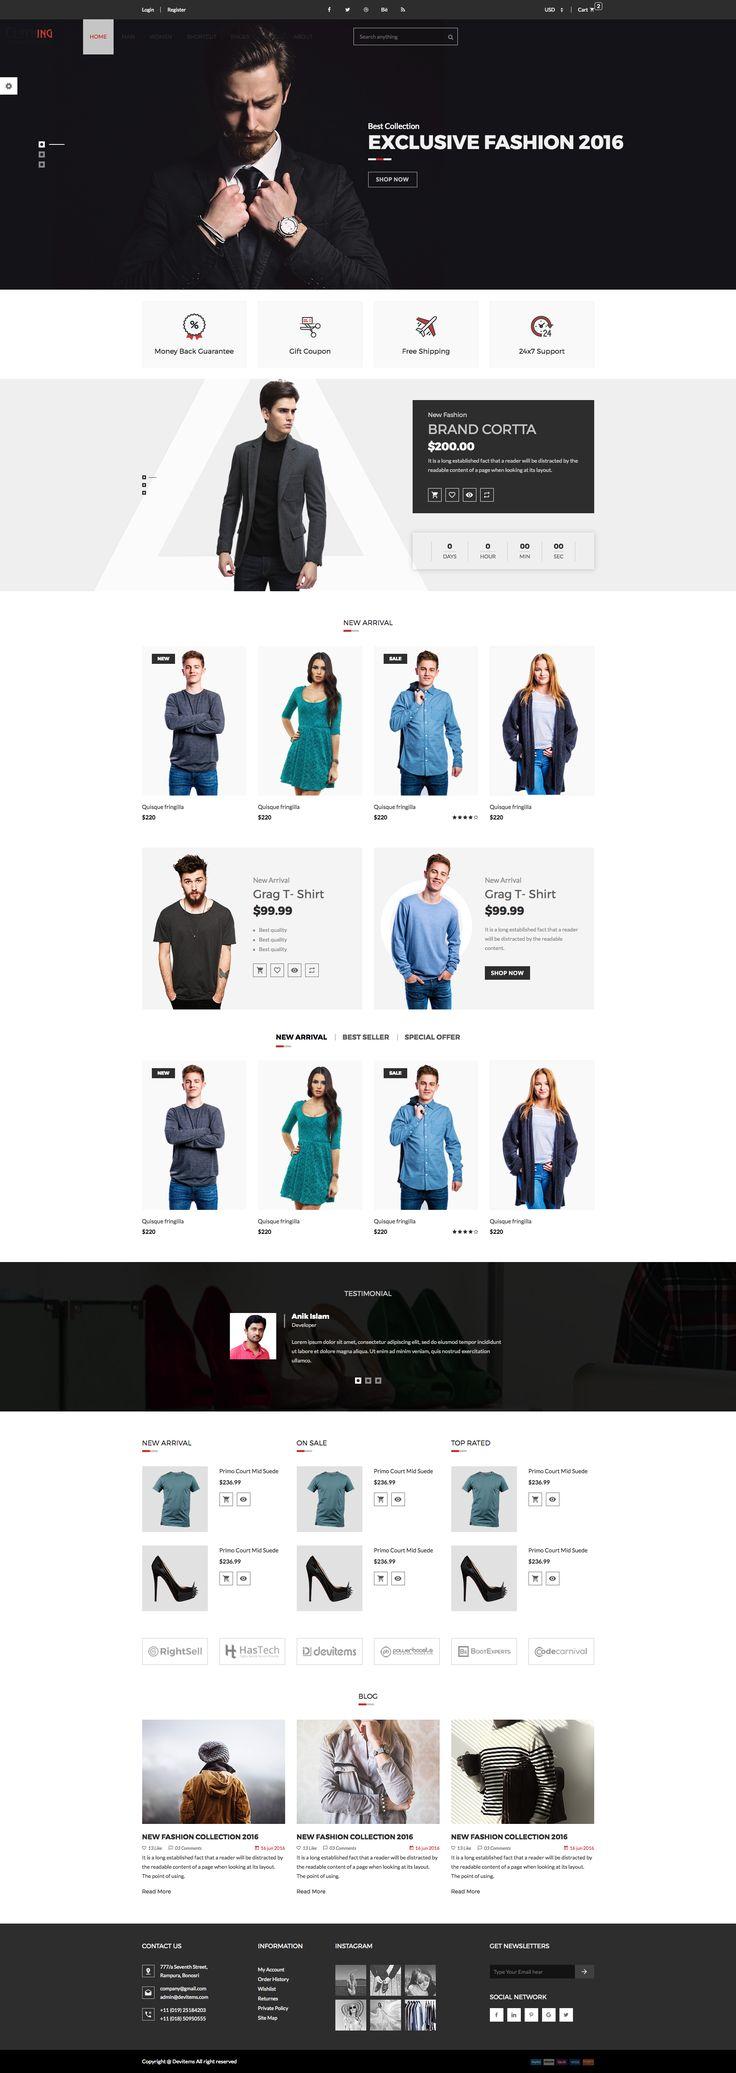 Clothing - eCommerce Fashion Template. We have included 4 defined layouts for home page to give you best selections in customisation.